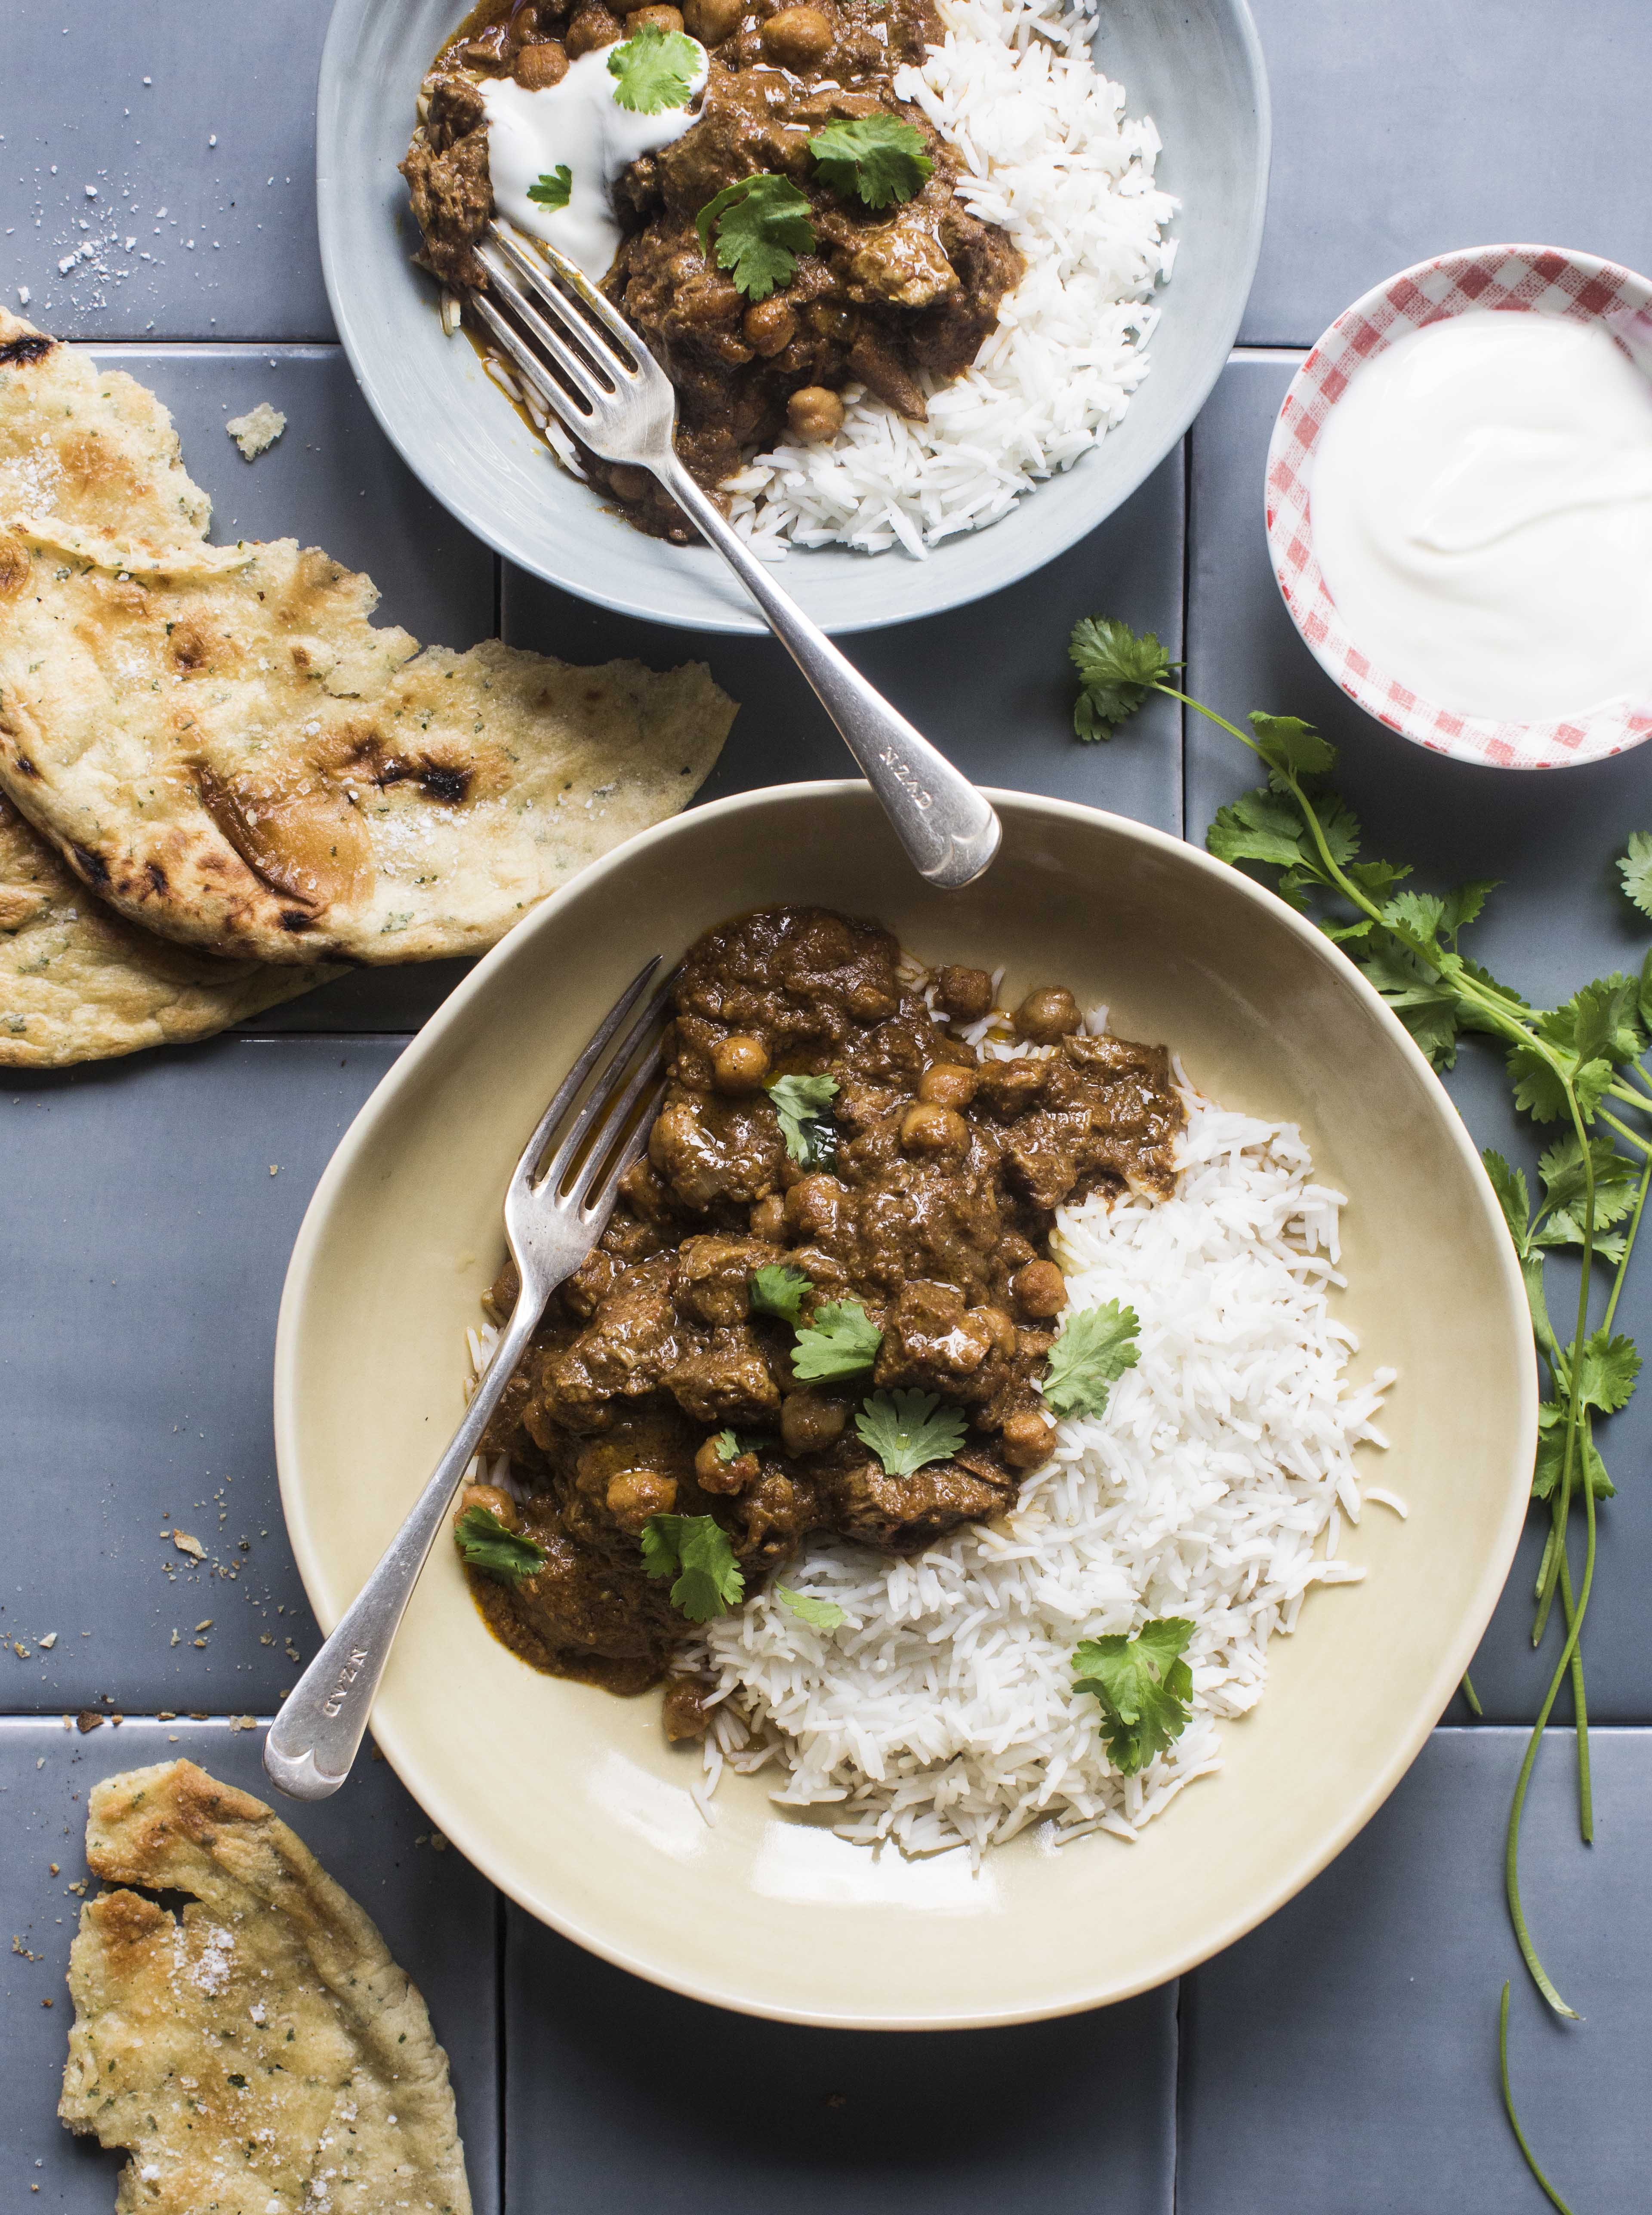 Chelseawinter fragrant indian spiced lamb curry fragrant indian spiced lamb curry with chickpeas forumfinder Image collections